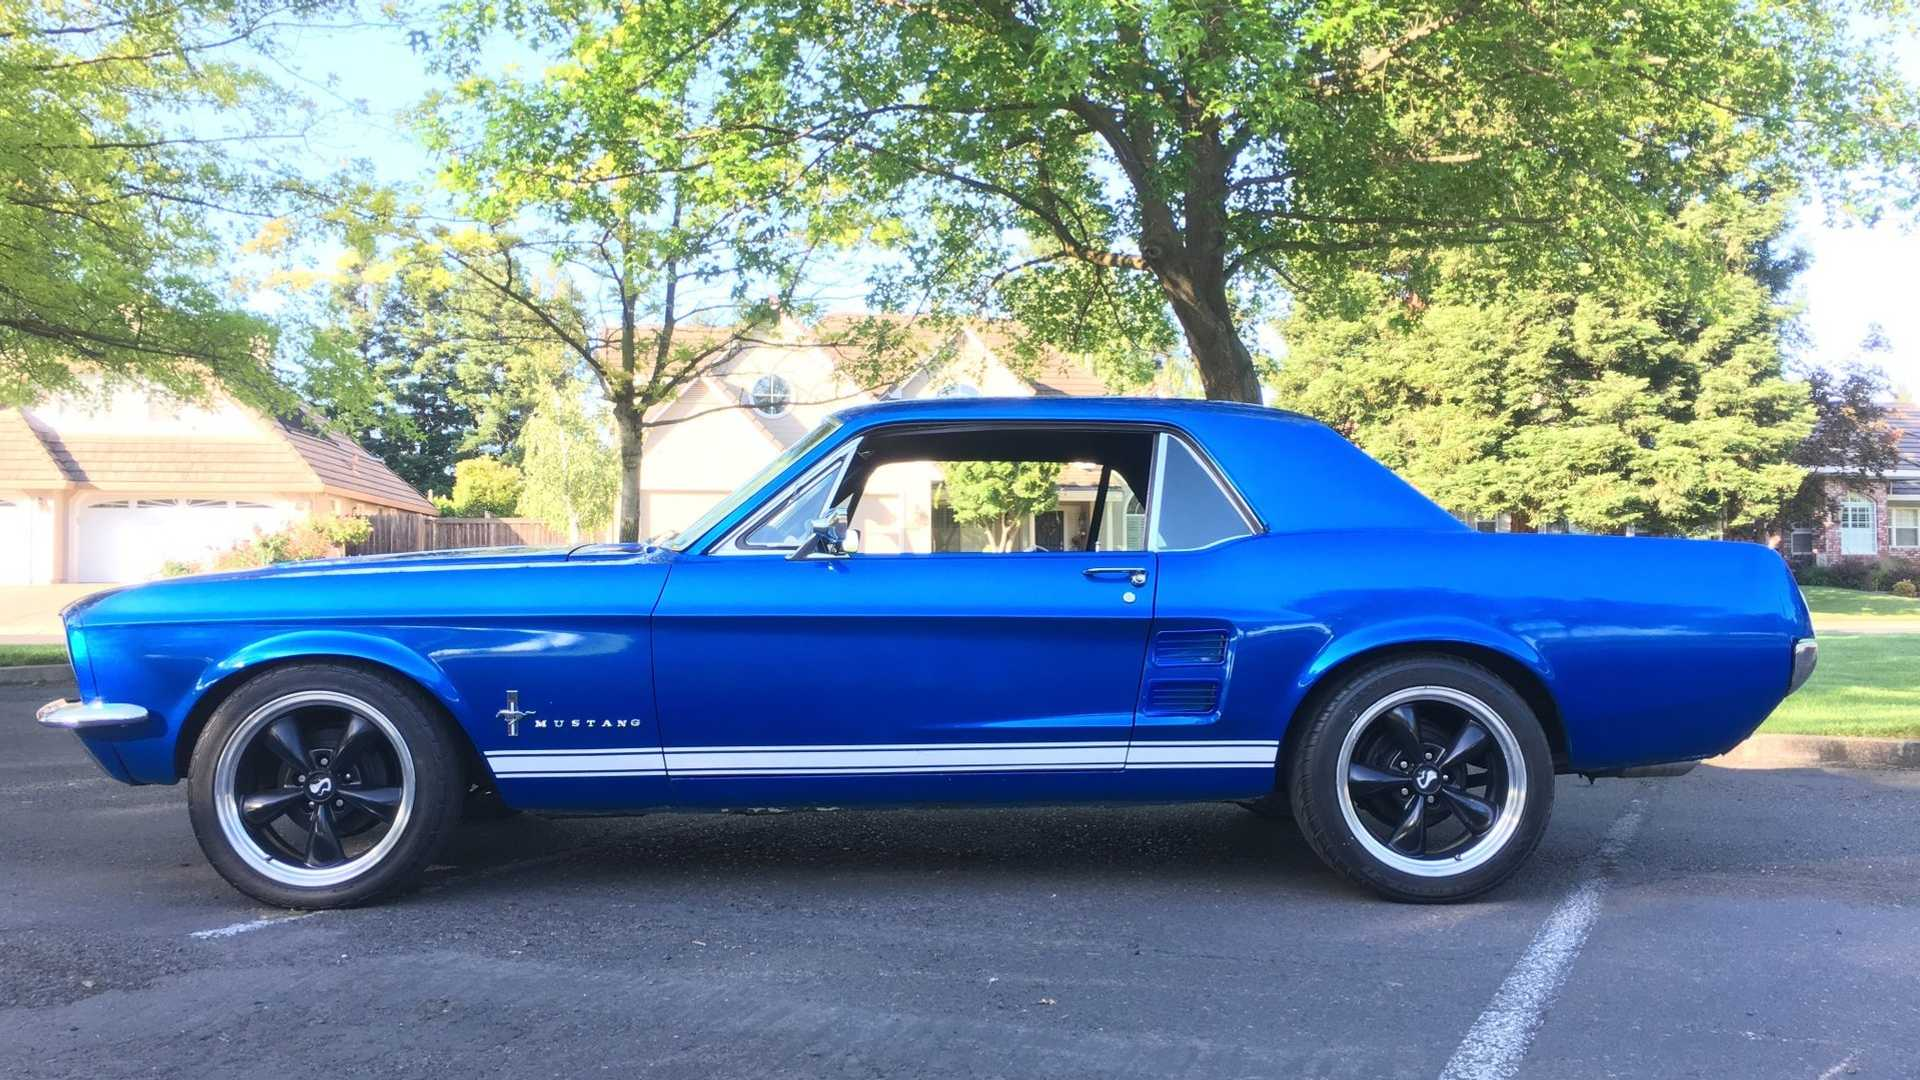 Handsome 1967 Restomod Mustang Is A Vision In Blue | Motorious